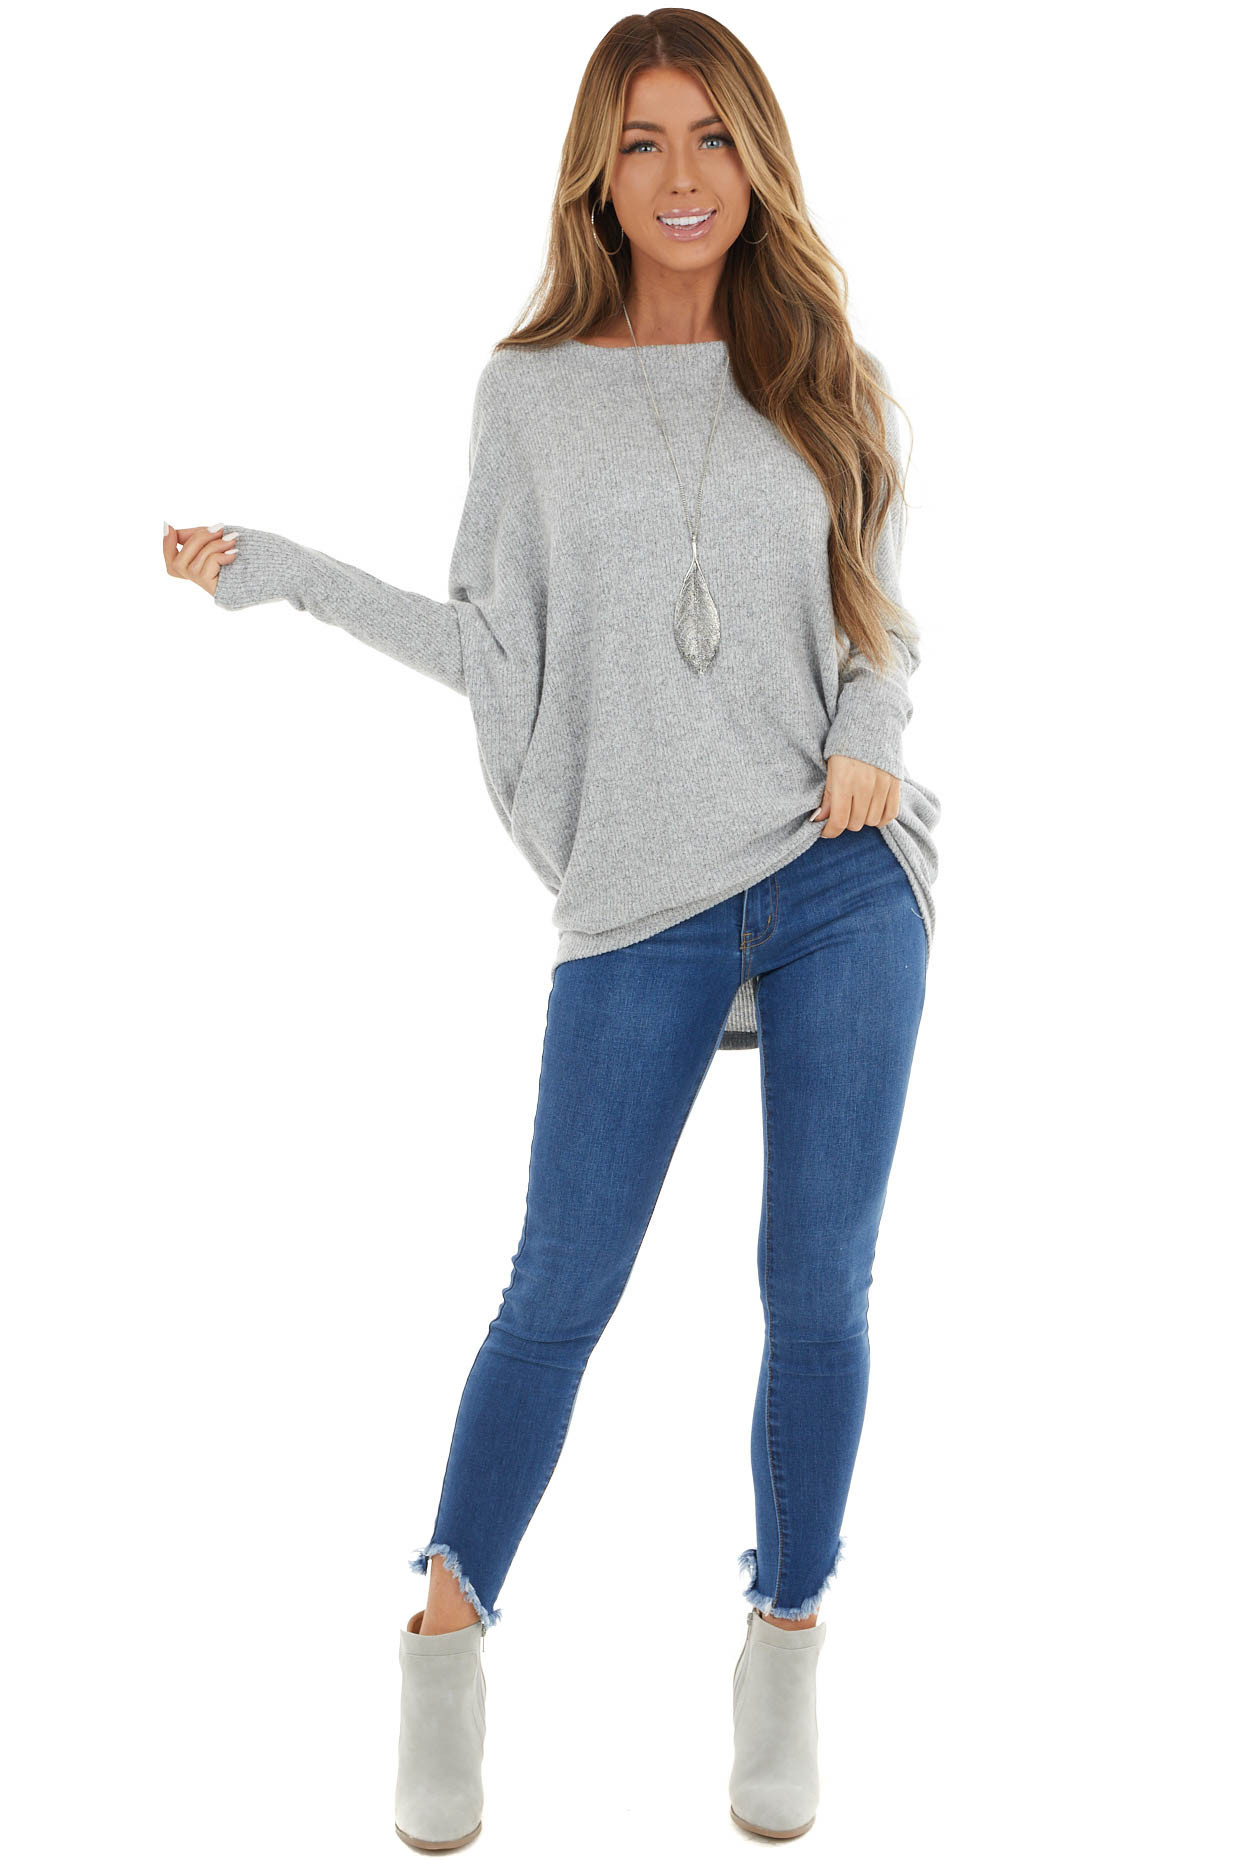 Dove Grey Ribbed Knit Top with Long Dolman Sleeves